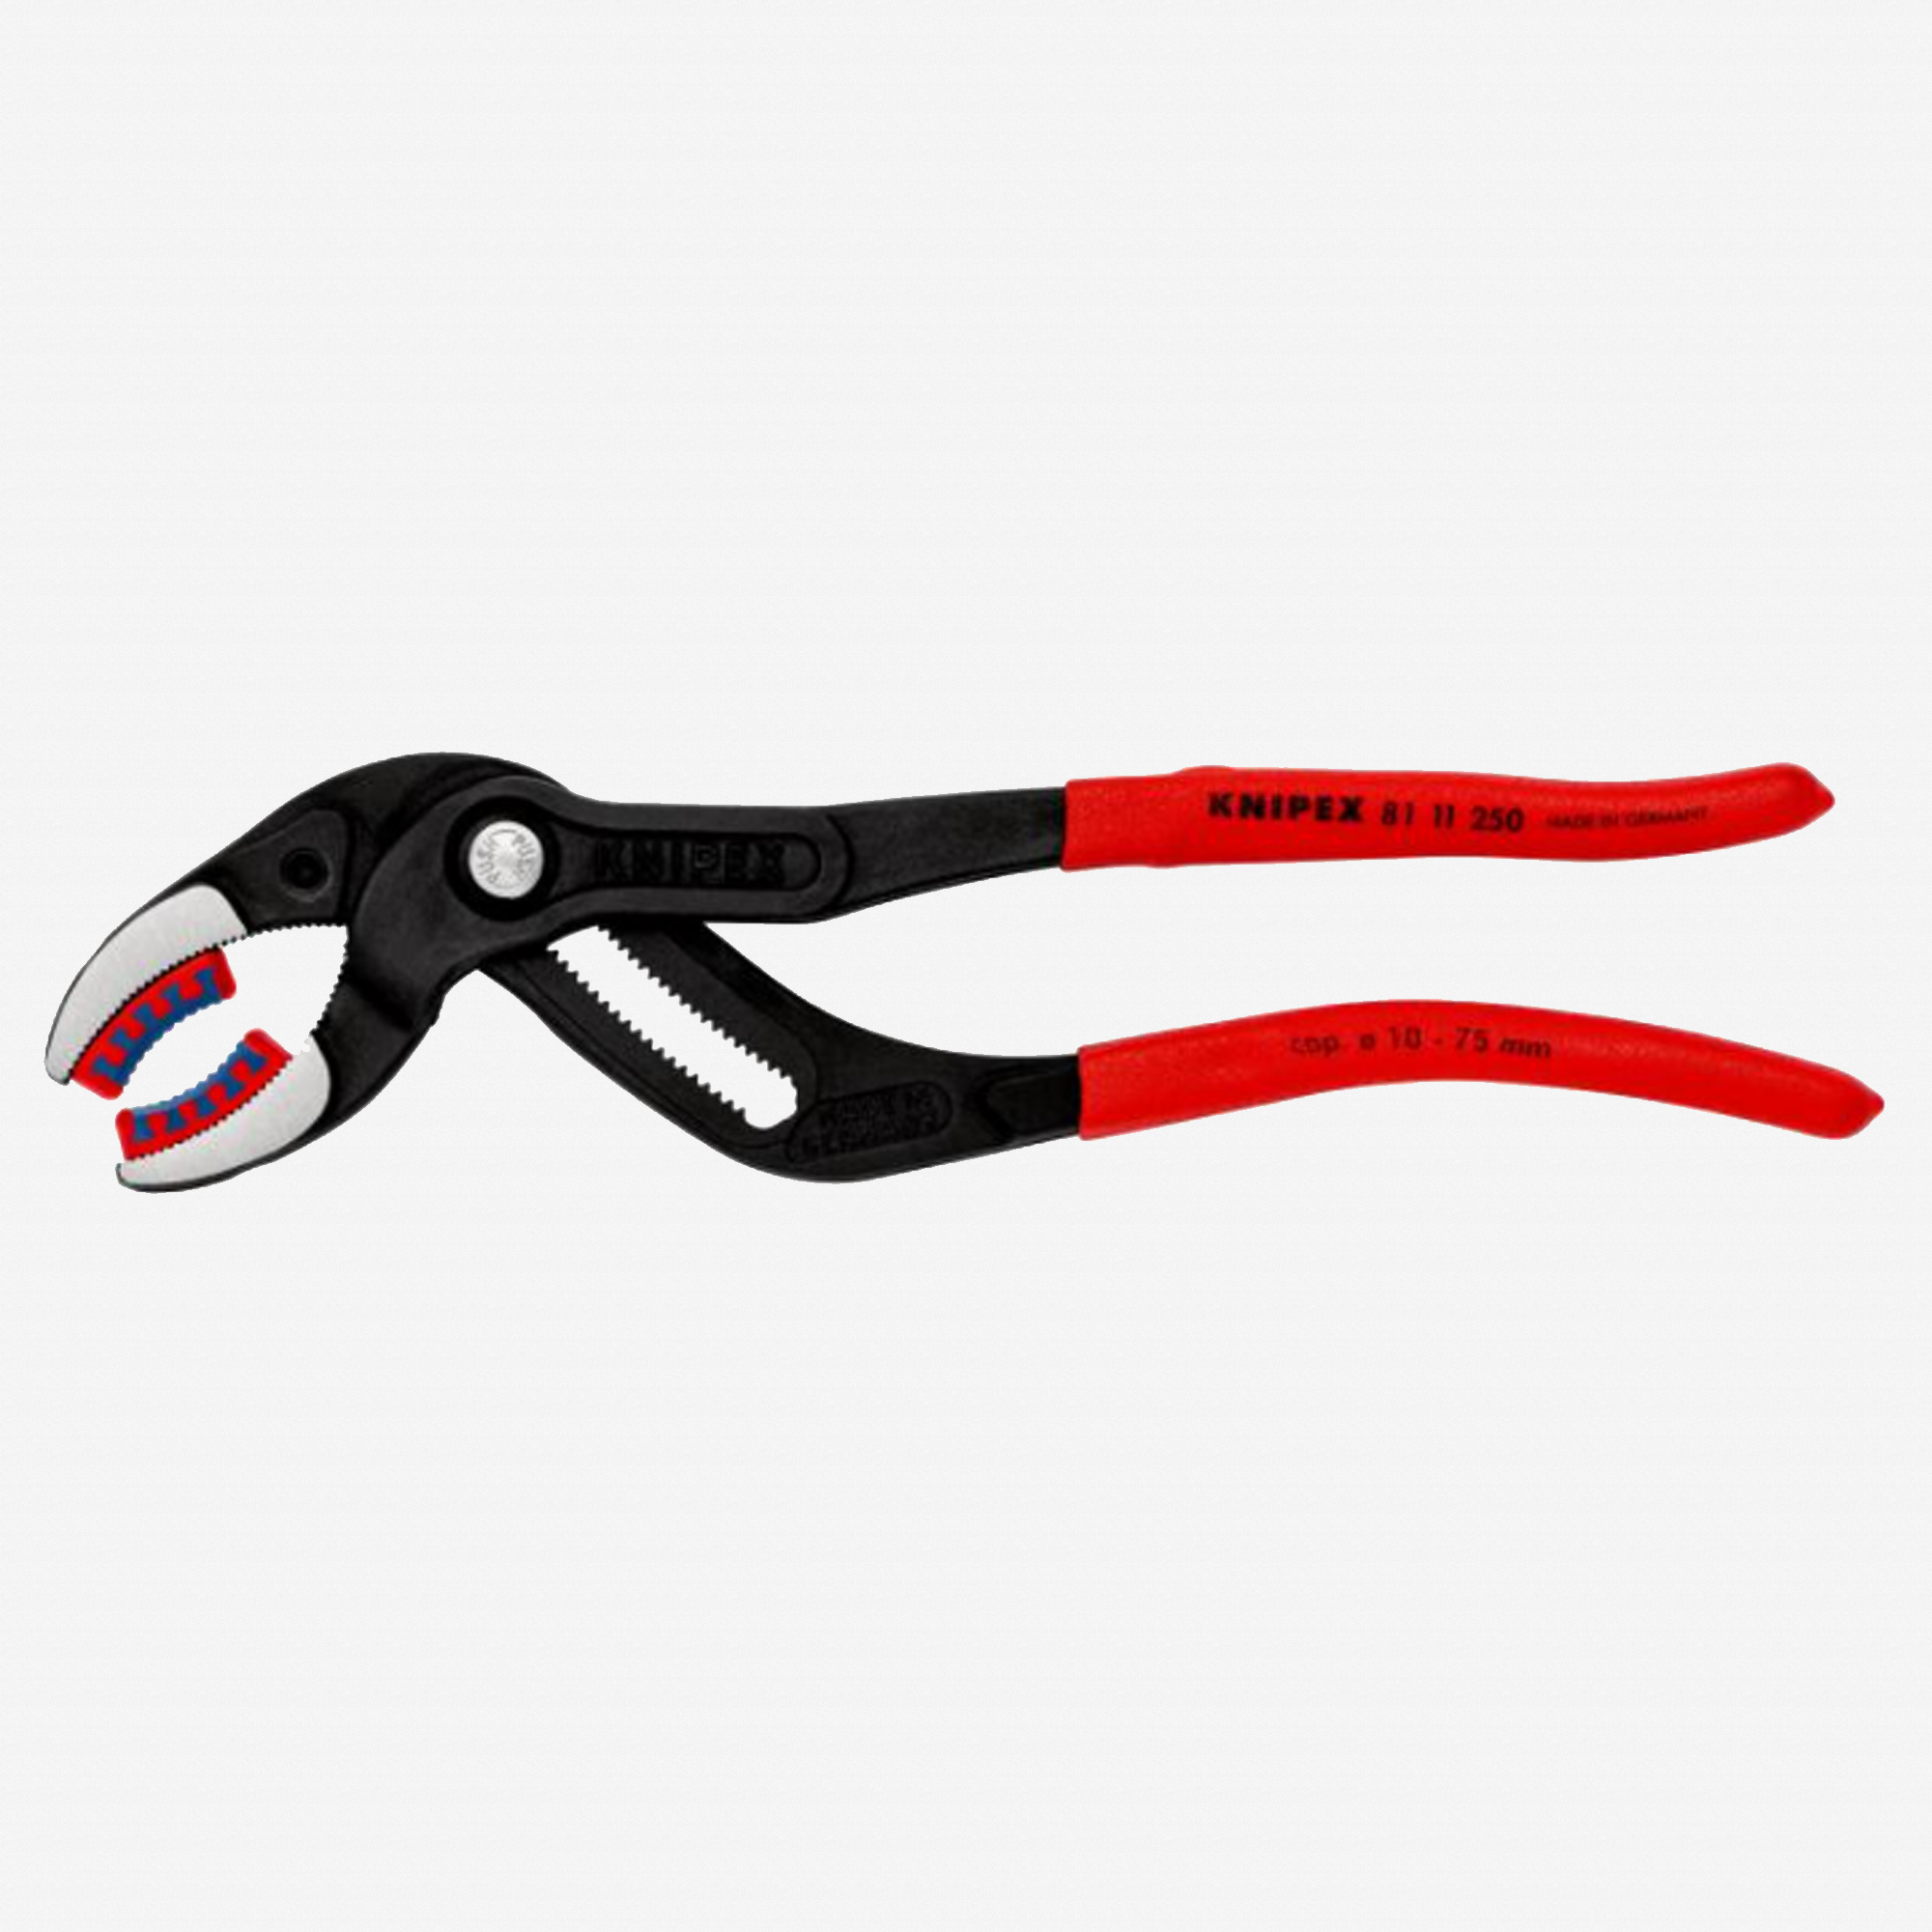 "Knipex 81-11-250 10"" Pipe Gripping Pliers w/ Plastic Jaws for tube fittings and connectors - KC Tool"